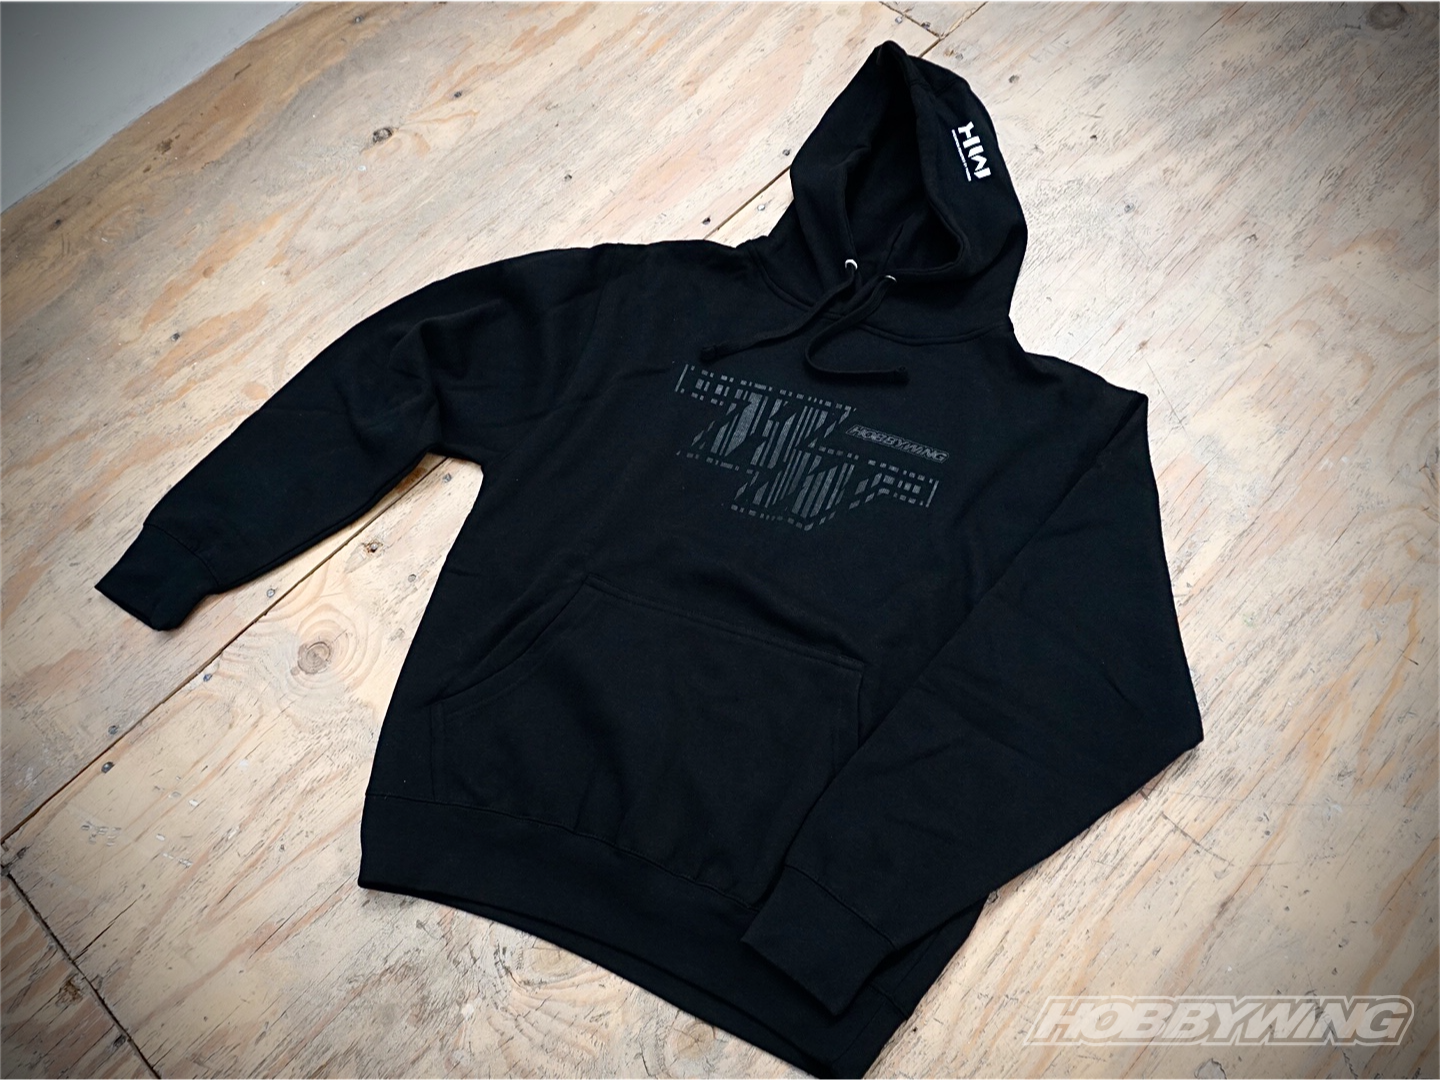 HOBBYWING Hoodie - Nerd The New Cool edition